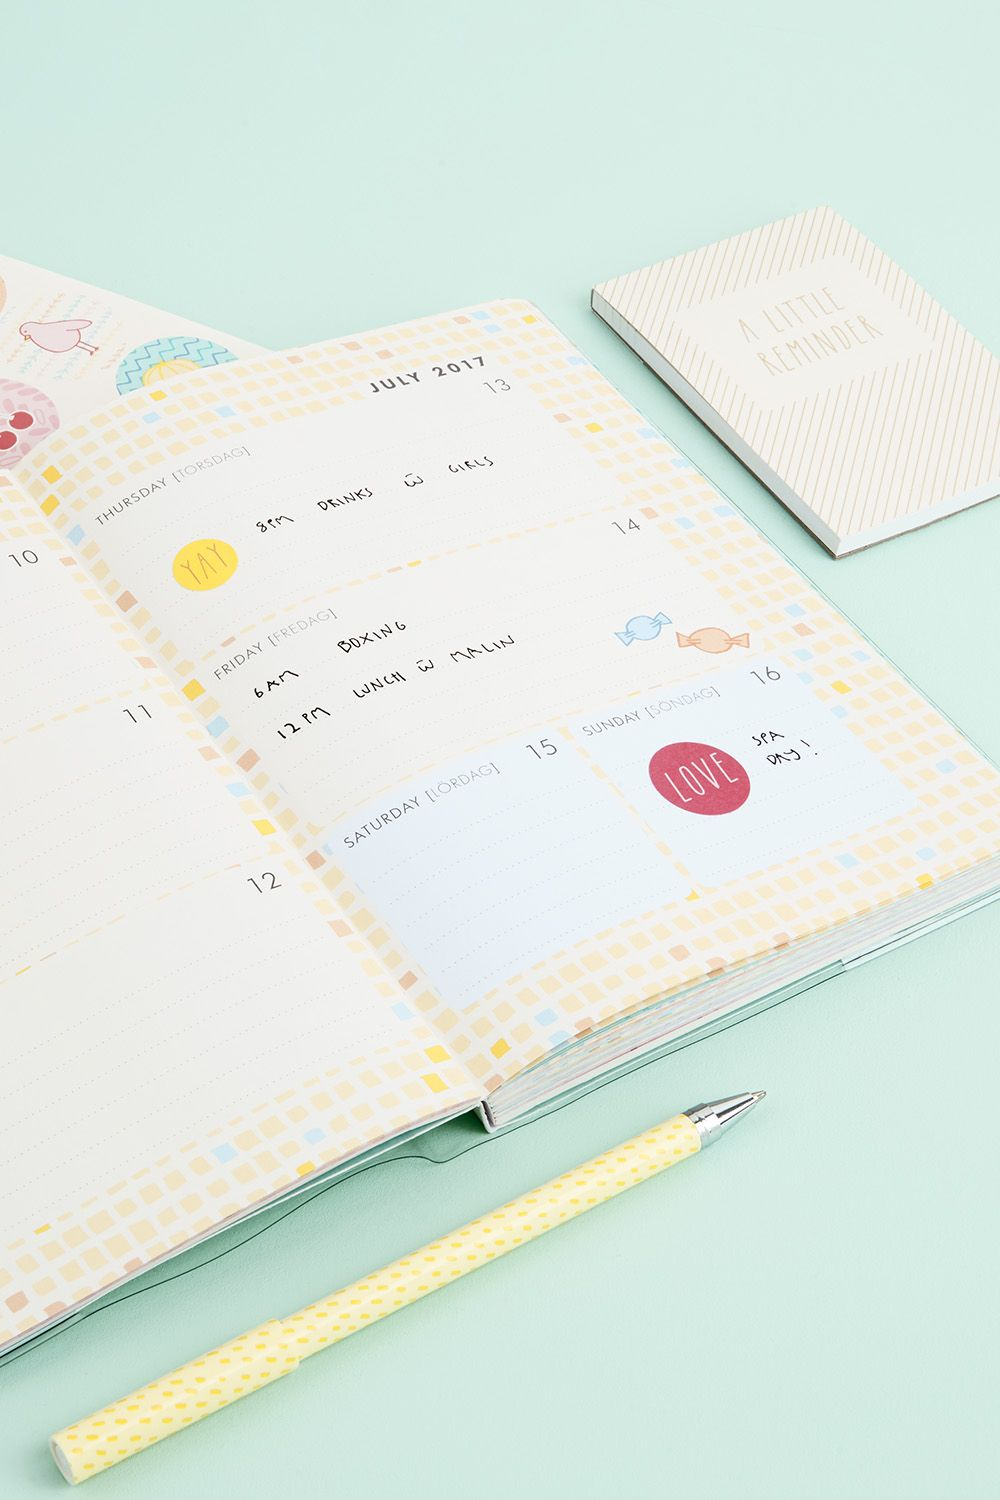 How to Get Ideas for Your Diary How to Get Ideas for Your Diary new pictures